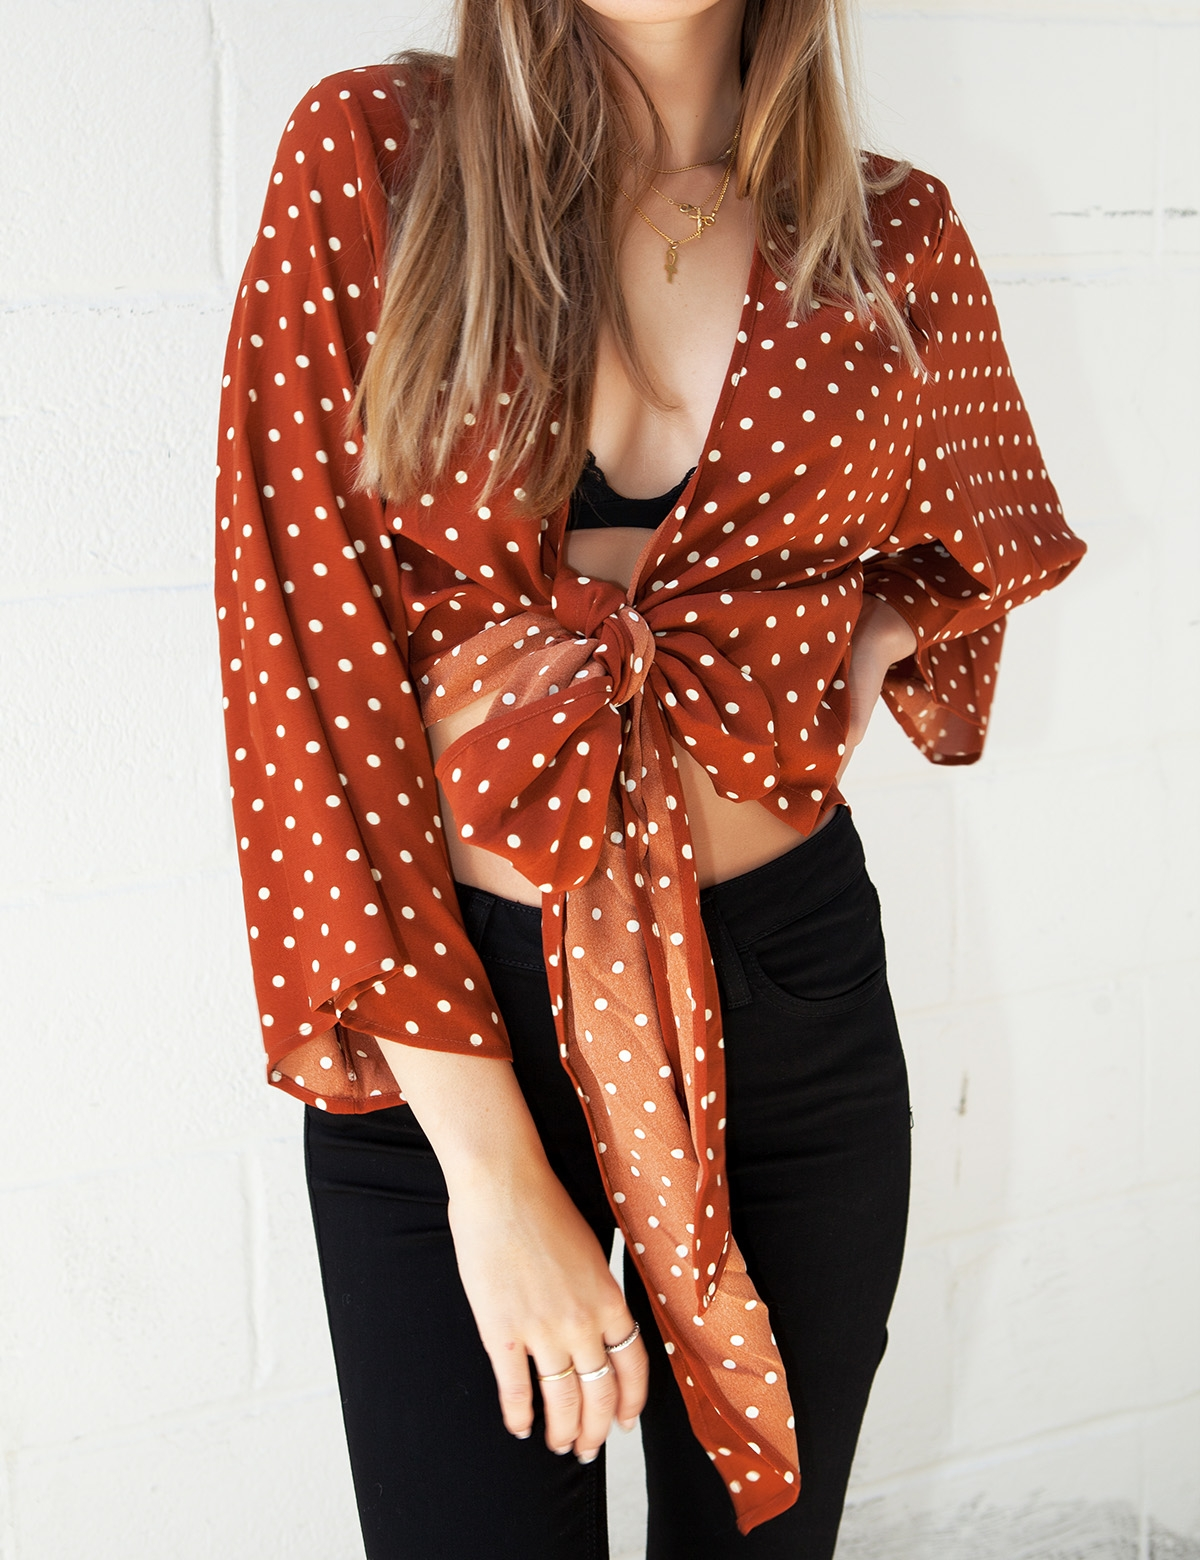 Autumn Polka Dot Tie Top